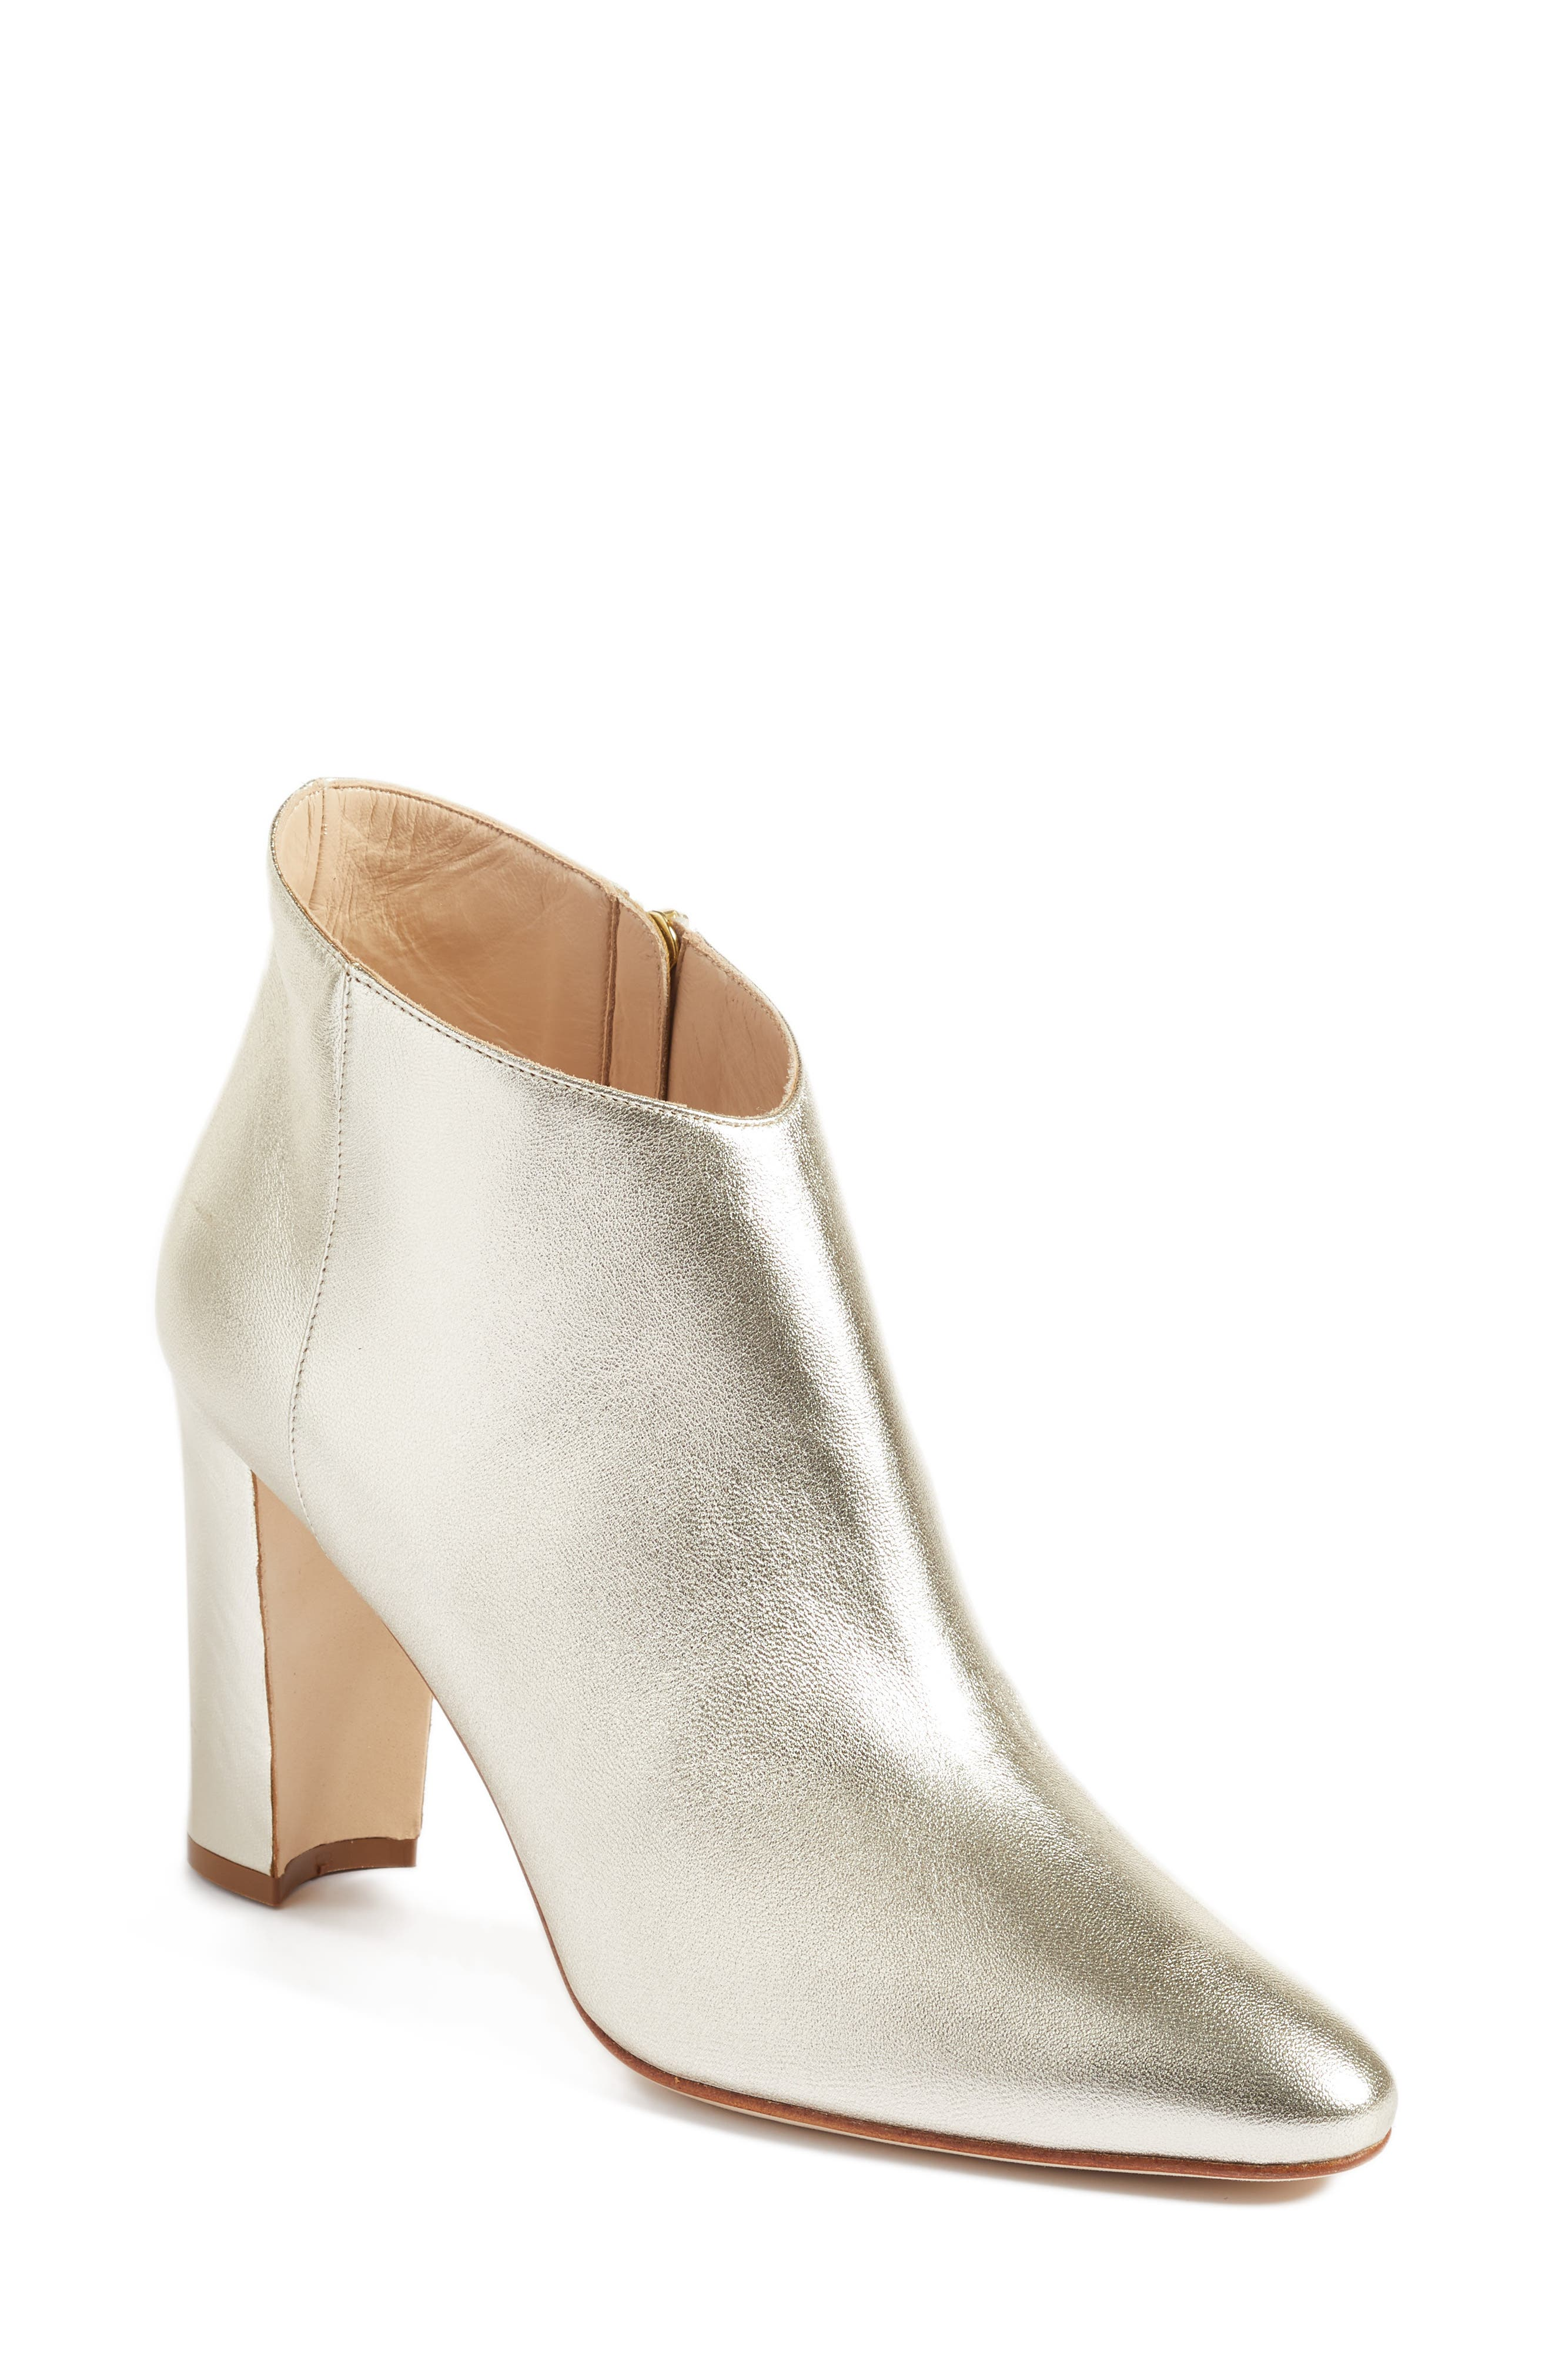 'Brusta'  Bootie,                         Main,                         color, Light Gold Leather